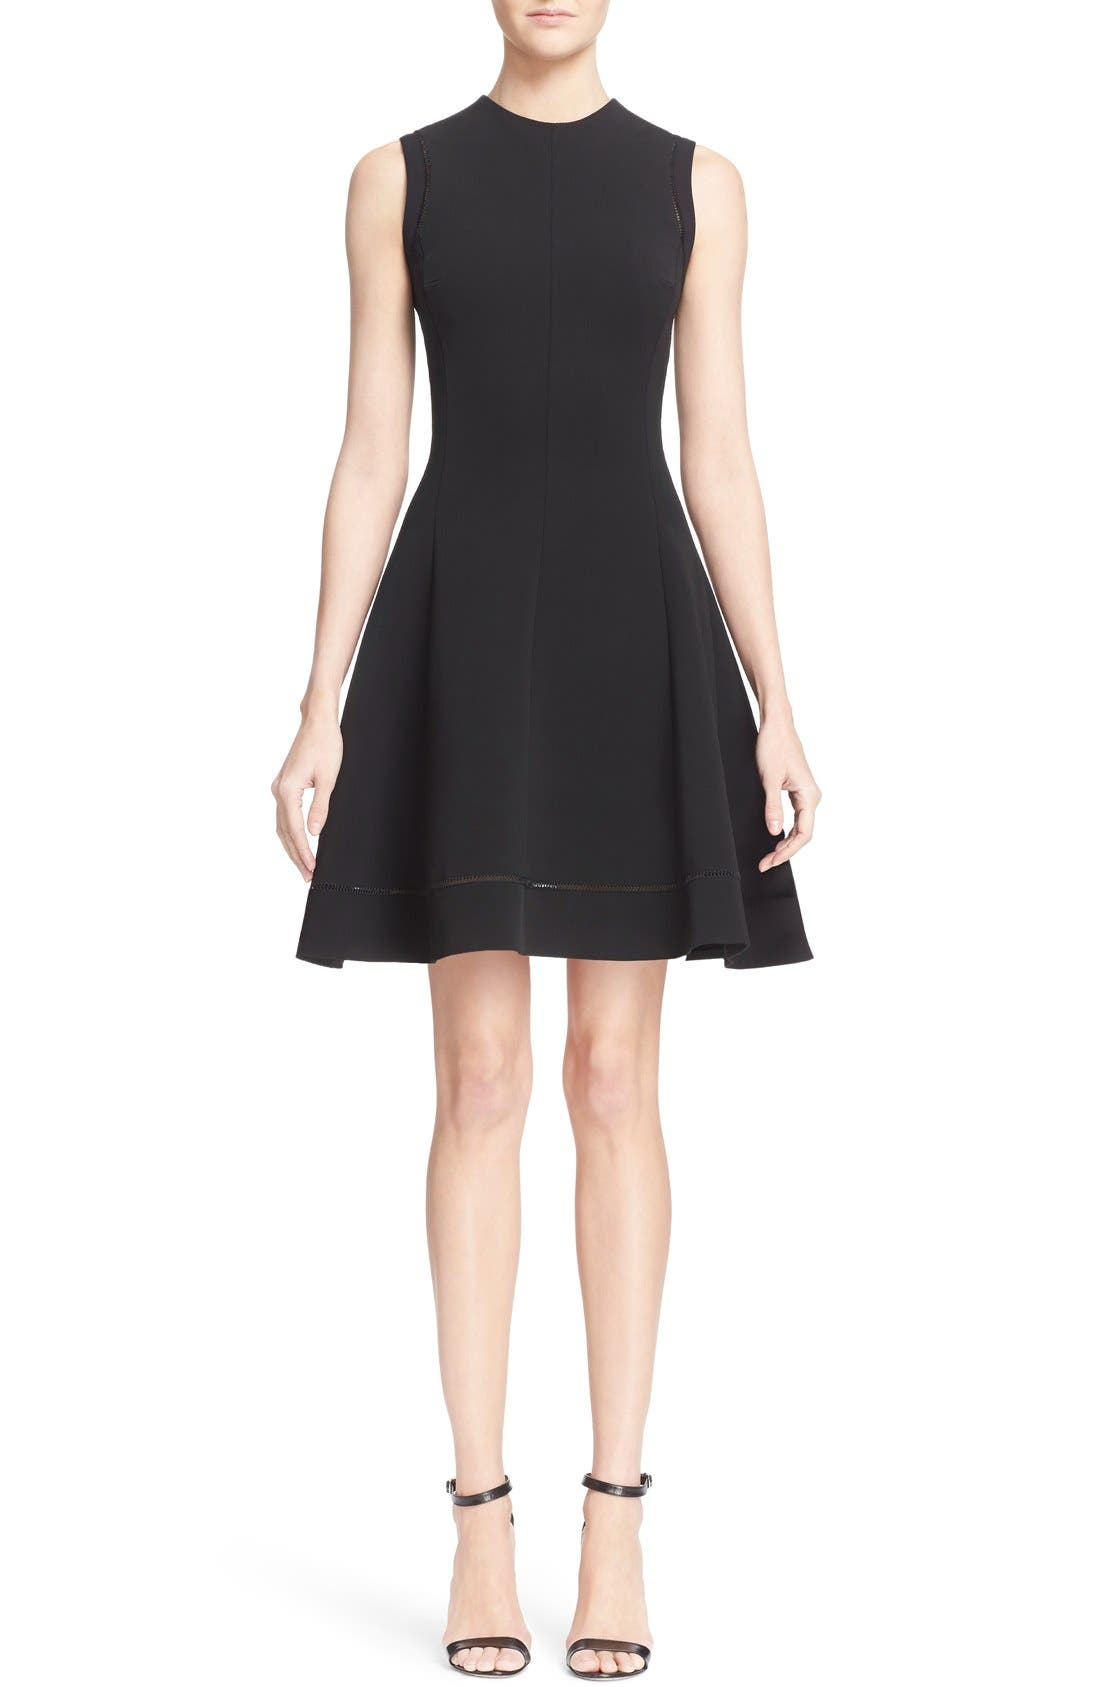 Alternate Image 1 Selected - Victoria Beckham Rib Knit Fit & Flare Dress